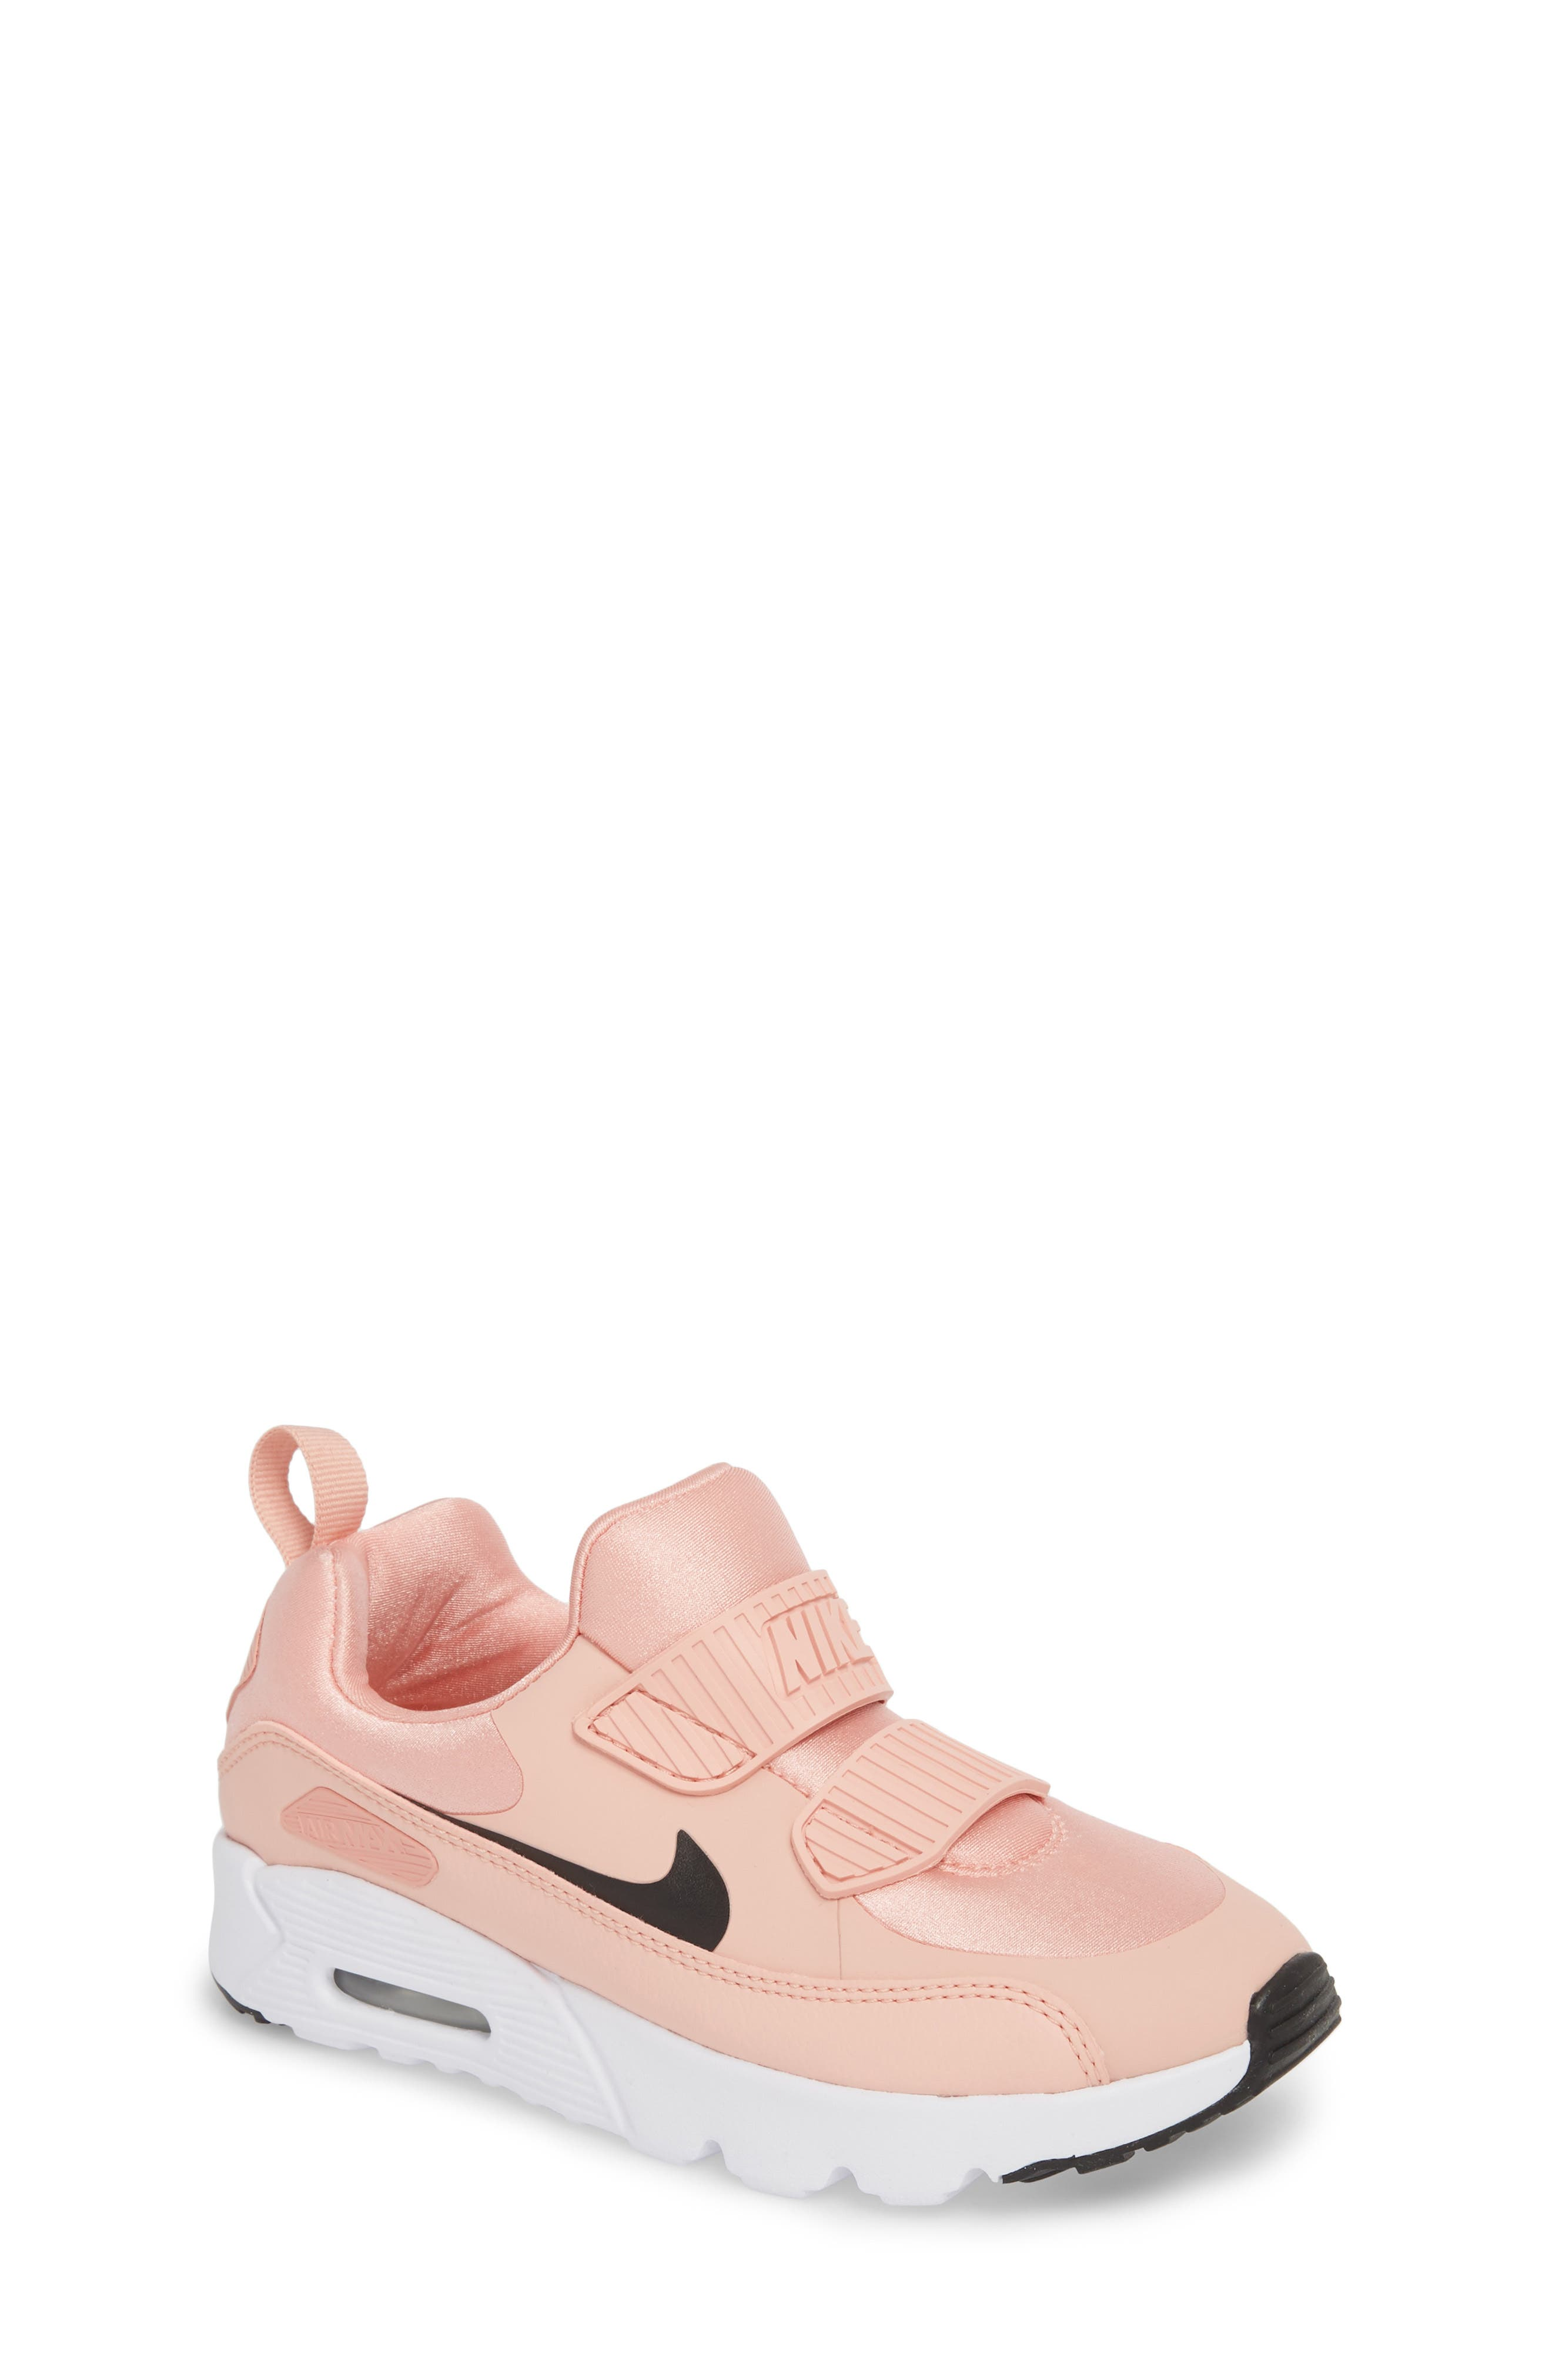 Air Max Tiny 90 Sneaker,                         Main,                         color, Coral Stardust/ Black